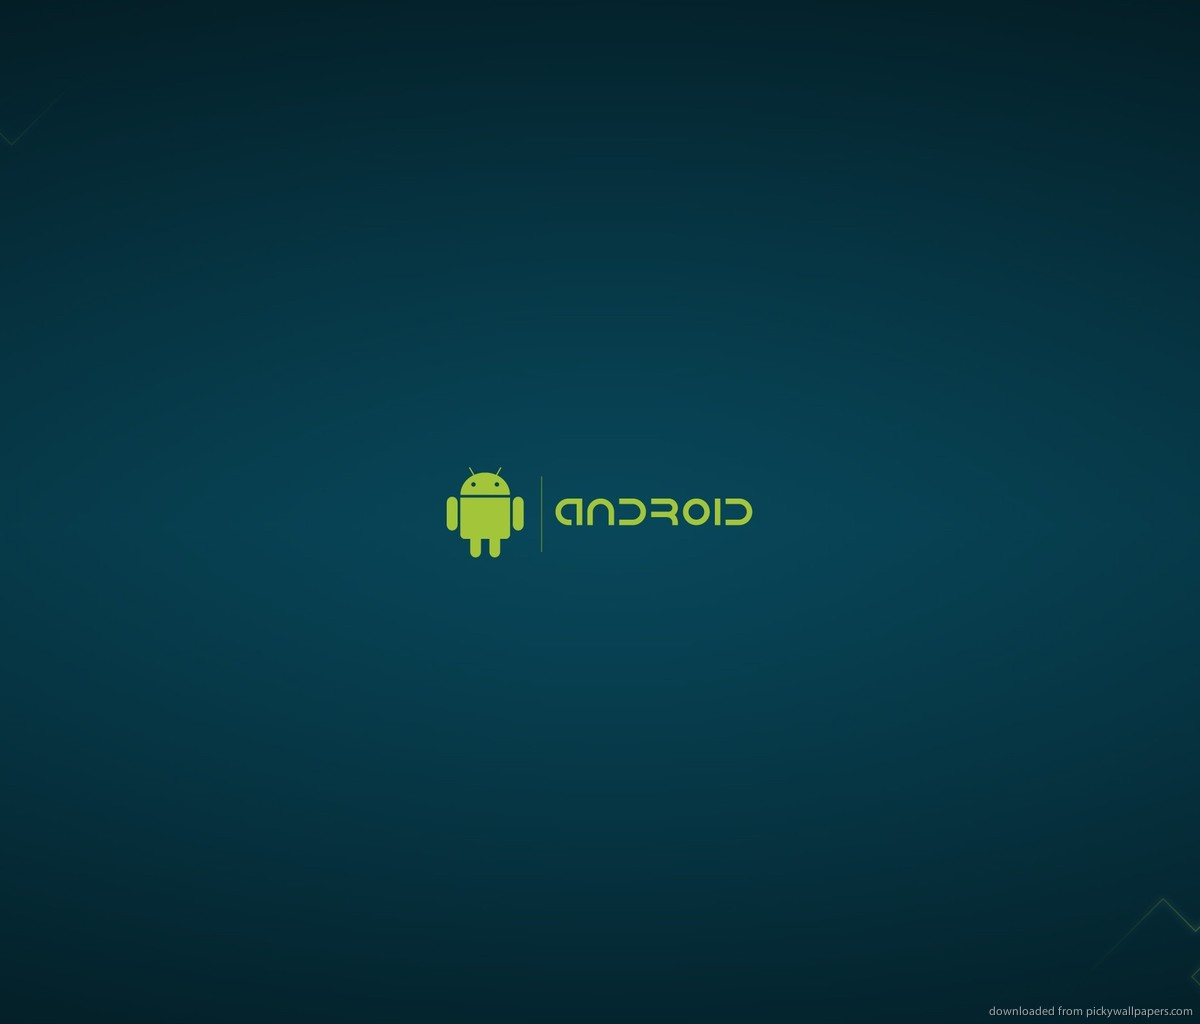 Android On A Blue Background Wallpaper For Samsung Galaxy Tab 1200x1024